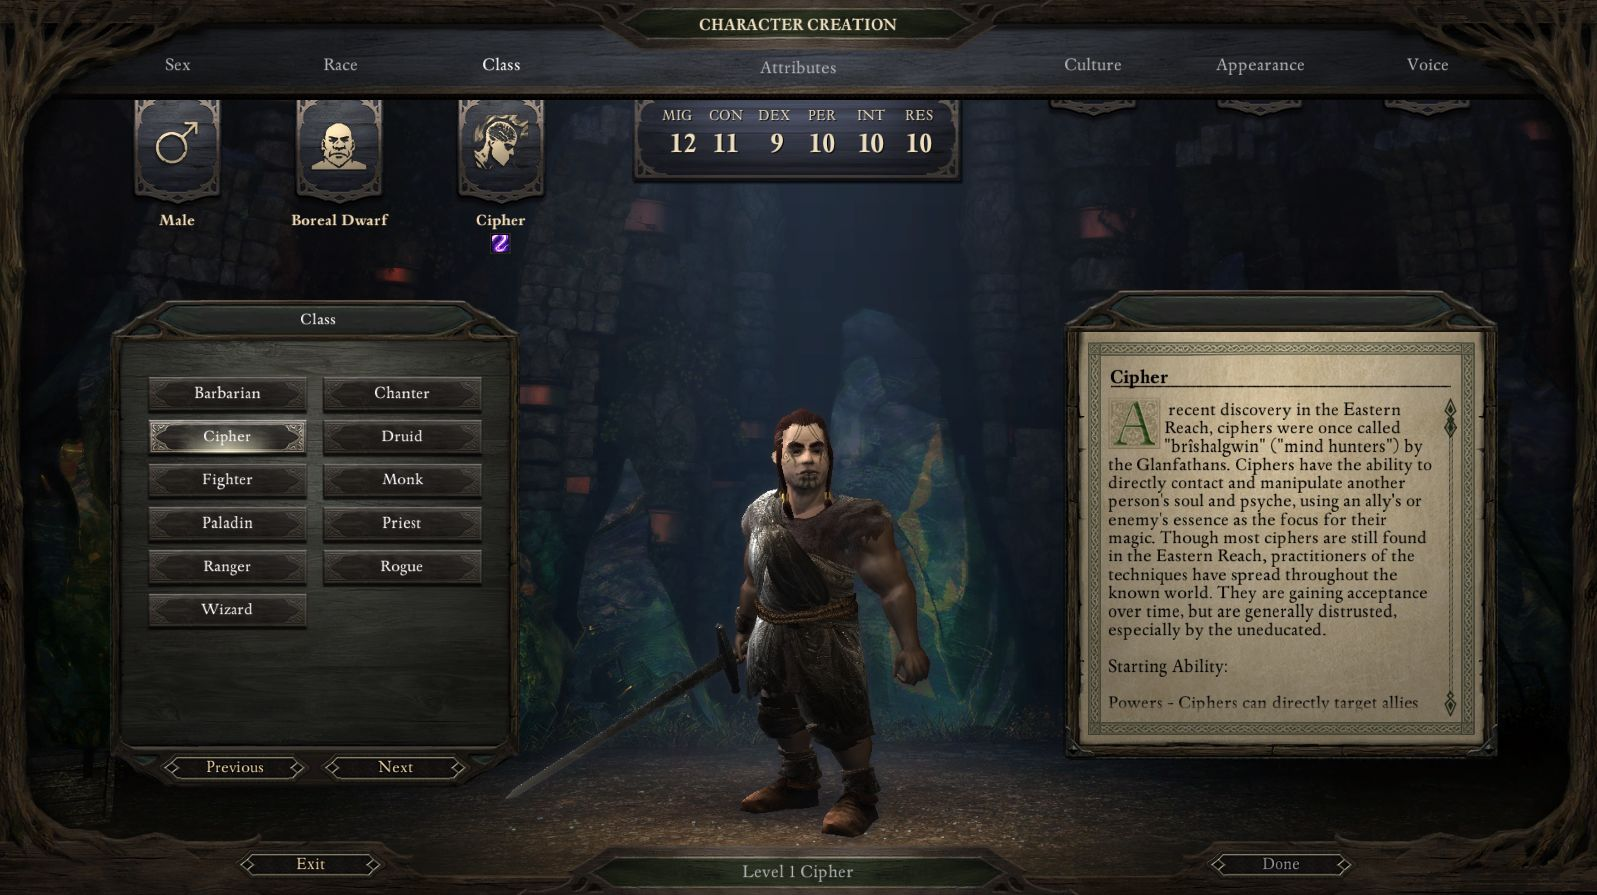 Mechanics That Come To You >> Pillars of Eternity Character Creation Guide | Pillars of Eternity